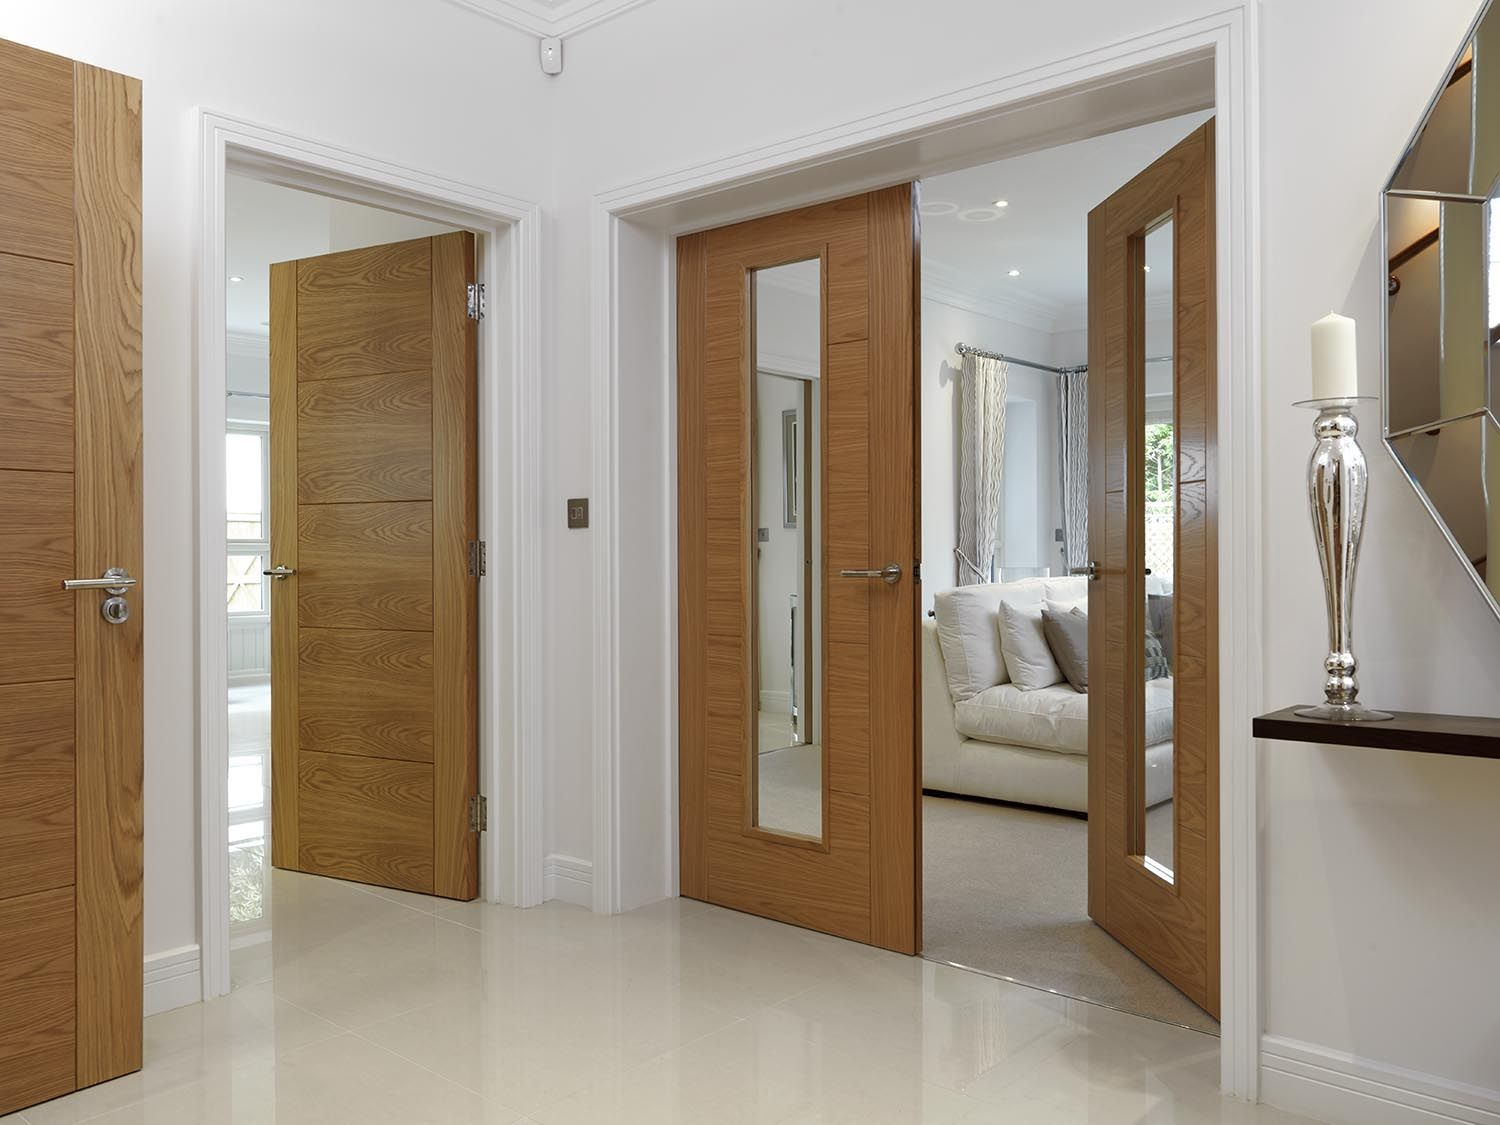 Moderne Deuren Jb Kind 39s River Oak Tigris And Emral Modern Style Doors